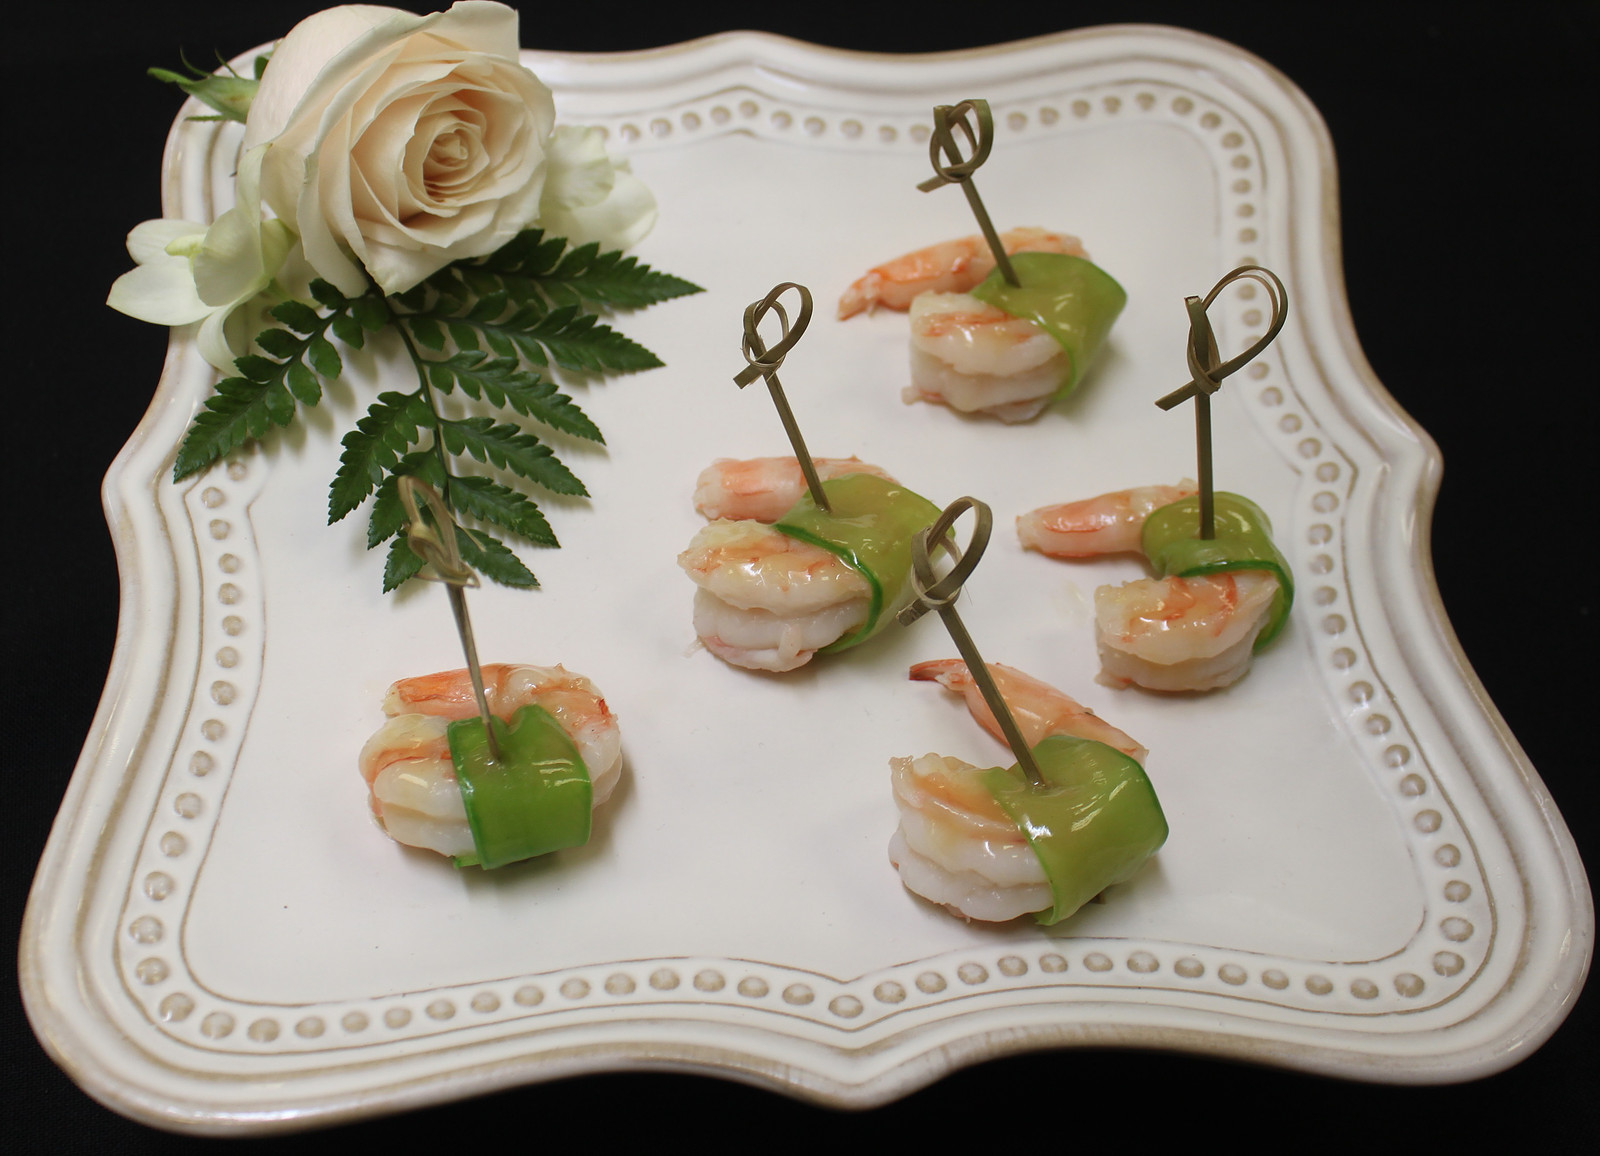 Ginger Soy Shrimp Wrapped in a Snow Pea